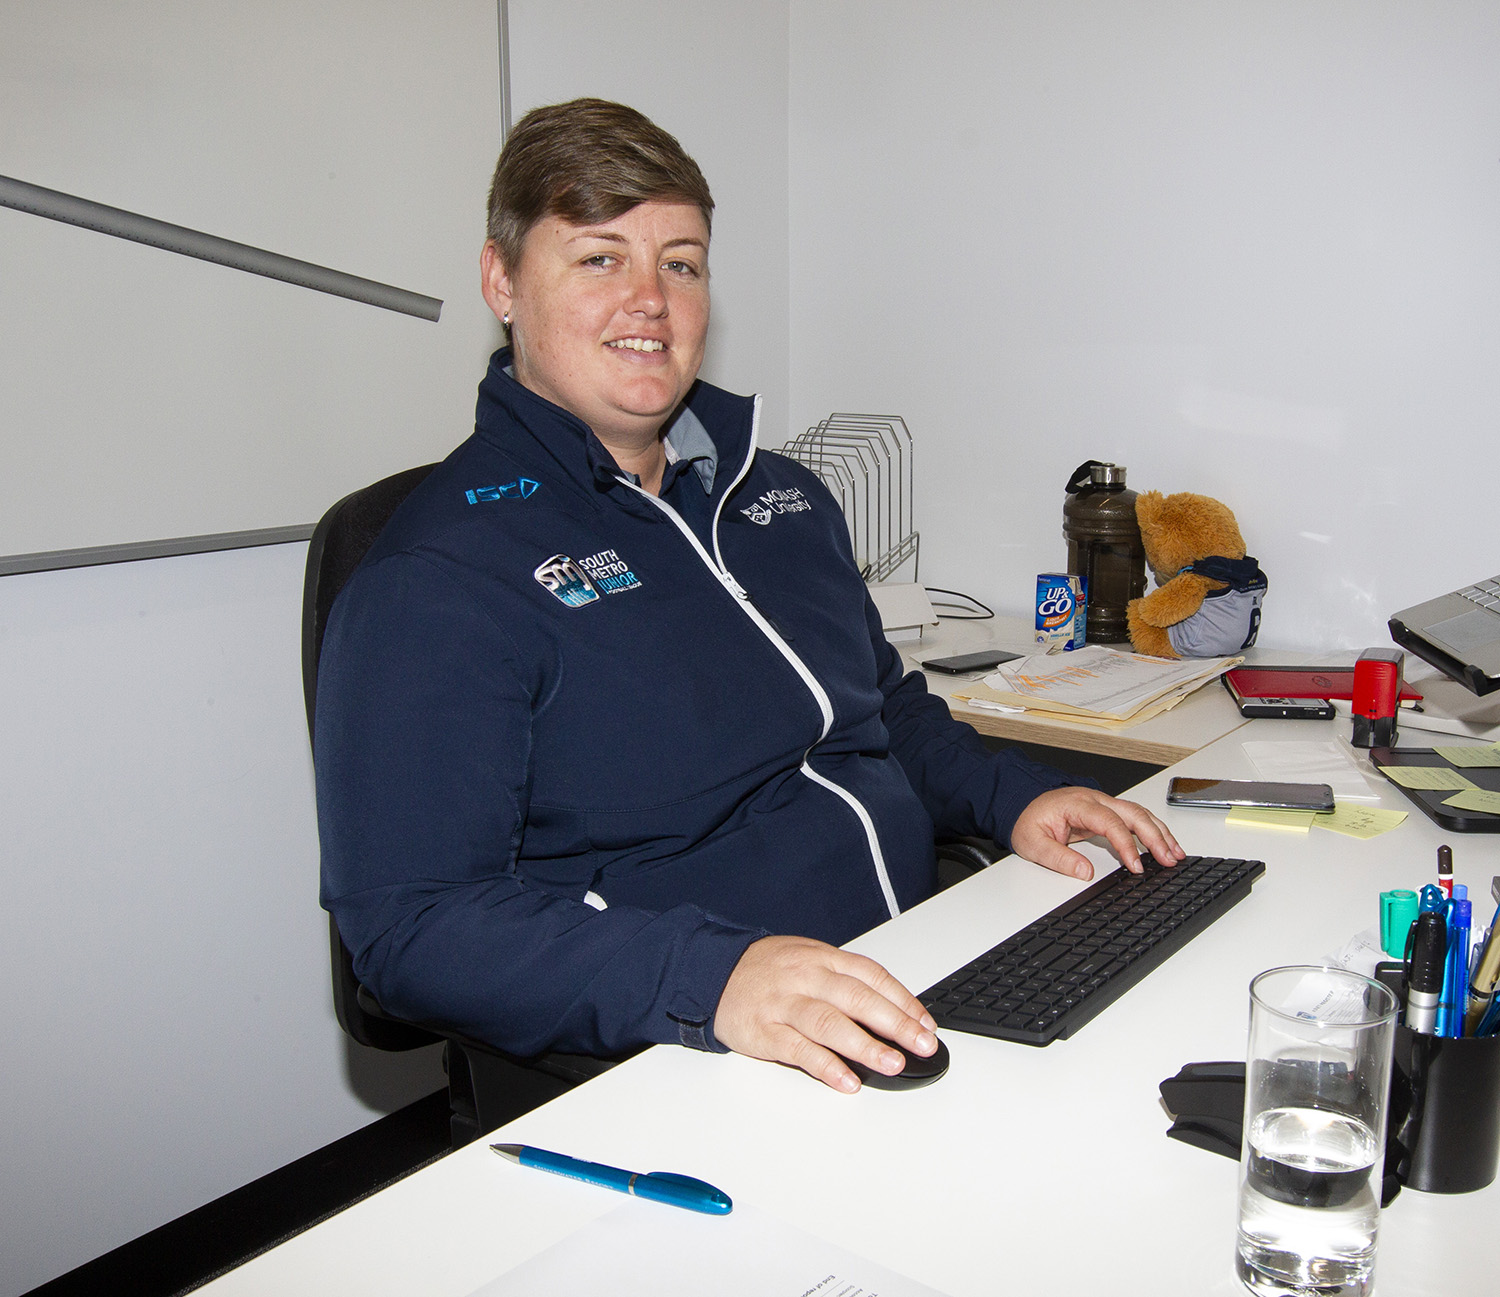 Emily Beventyre works as General Manager of South Metro Junior Football League, which is based at St. Kilda FC's new complex at Moorabbin.